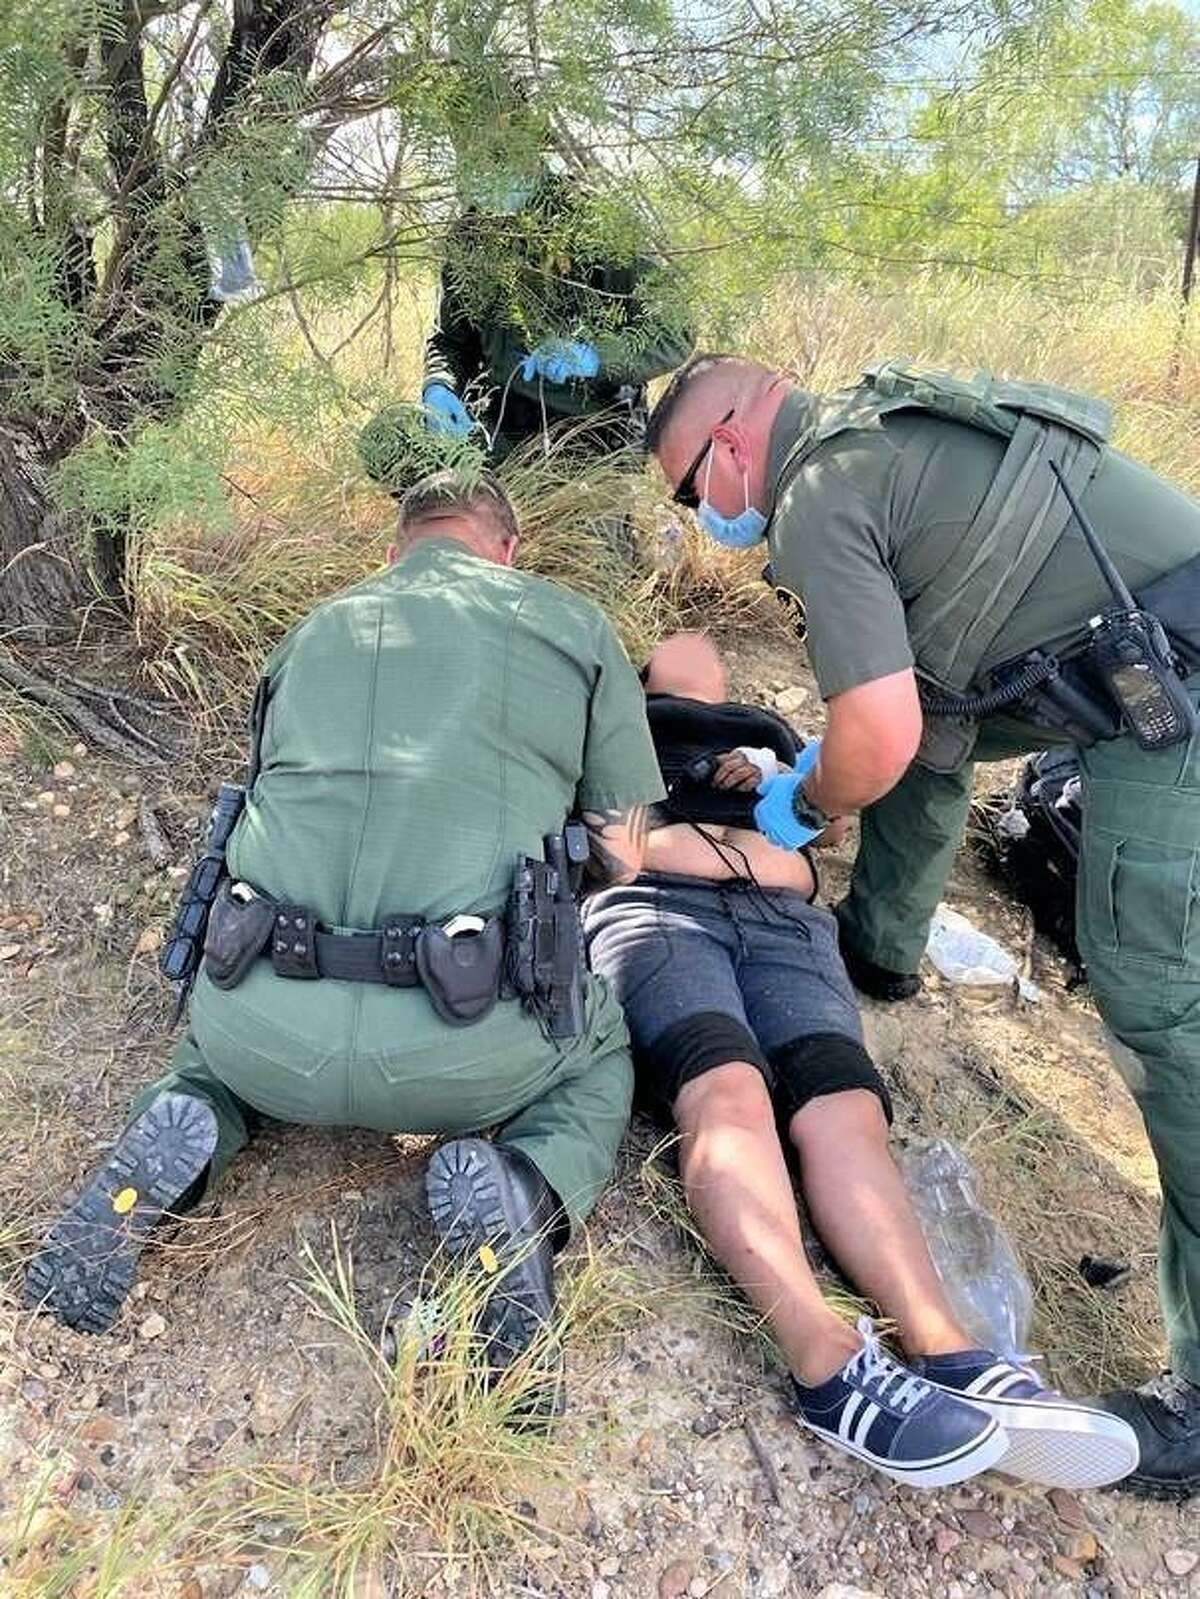 U.S. Border Patrol agents are seen aiding a lost individual. He was later taken to a local hospital for further treatment.